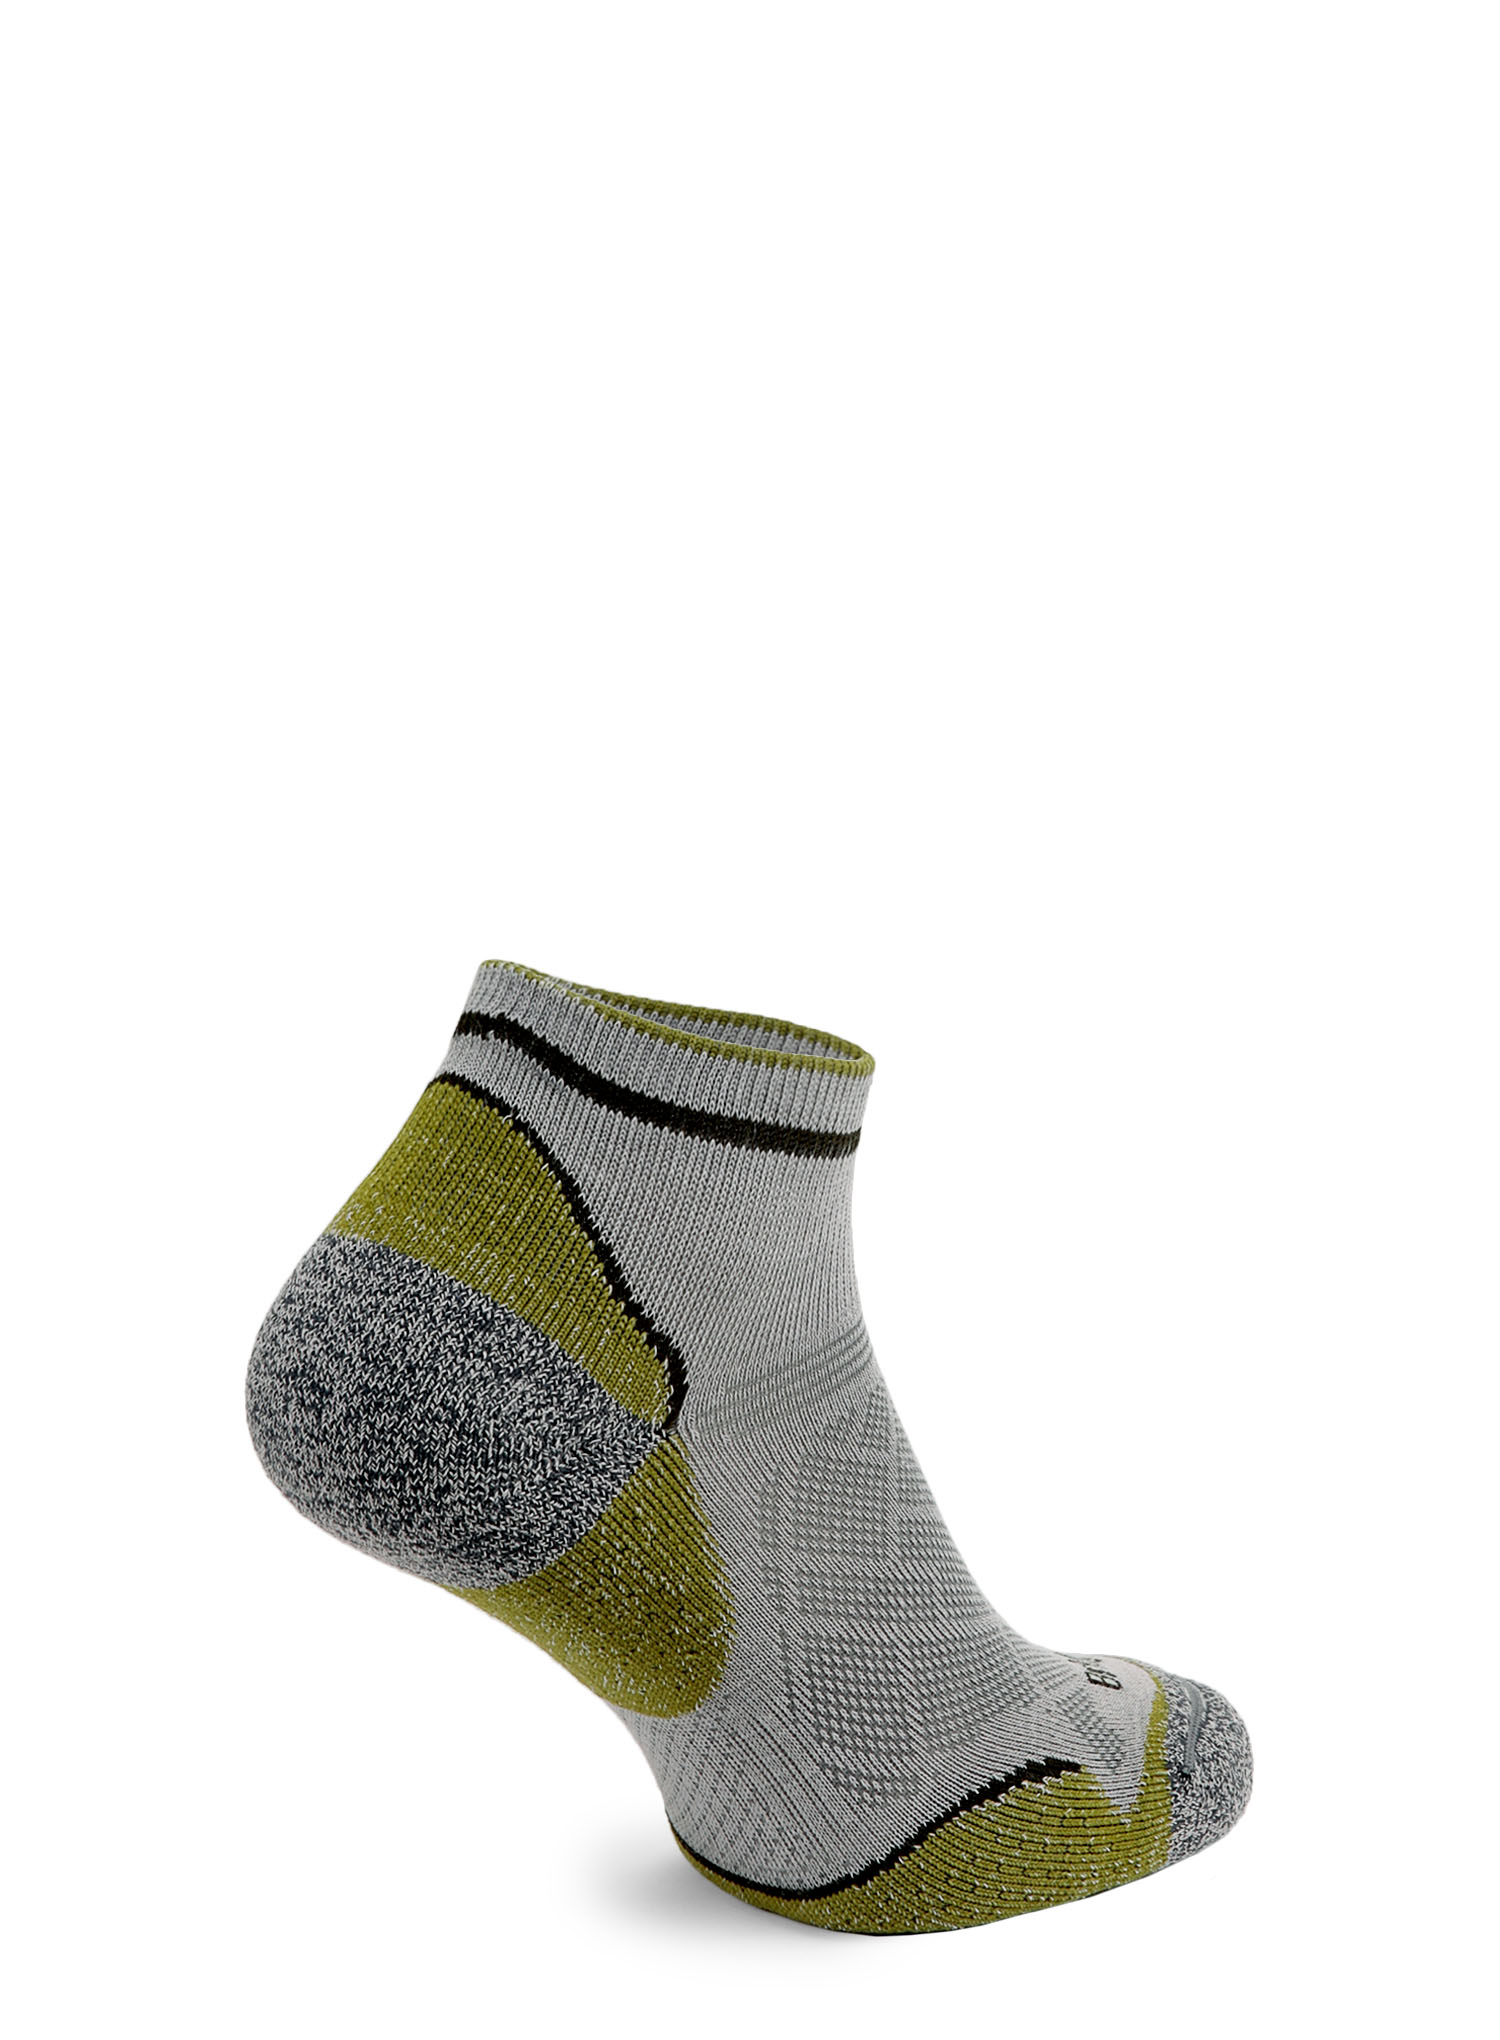 Skarpetki Bridgedale Hike Ultra Lt T2 Coolmax P Low - grey/green - zdjęcie nr. 3